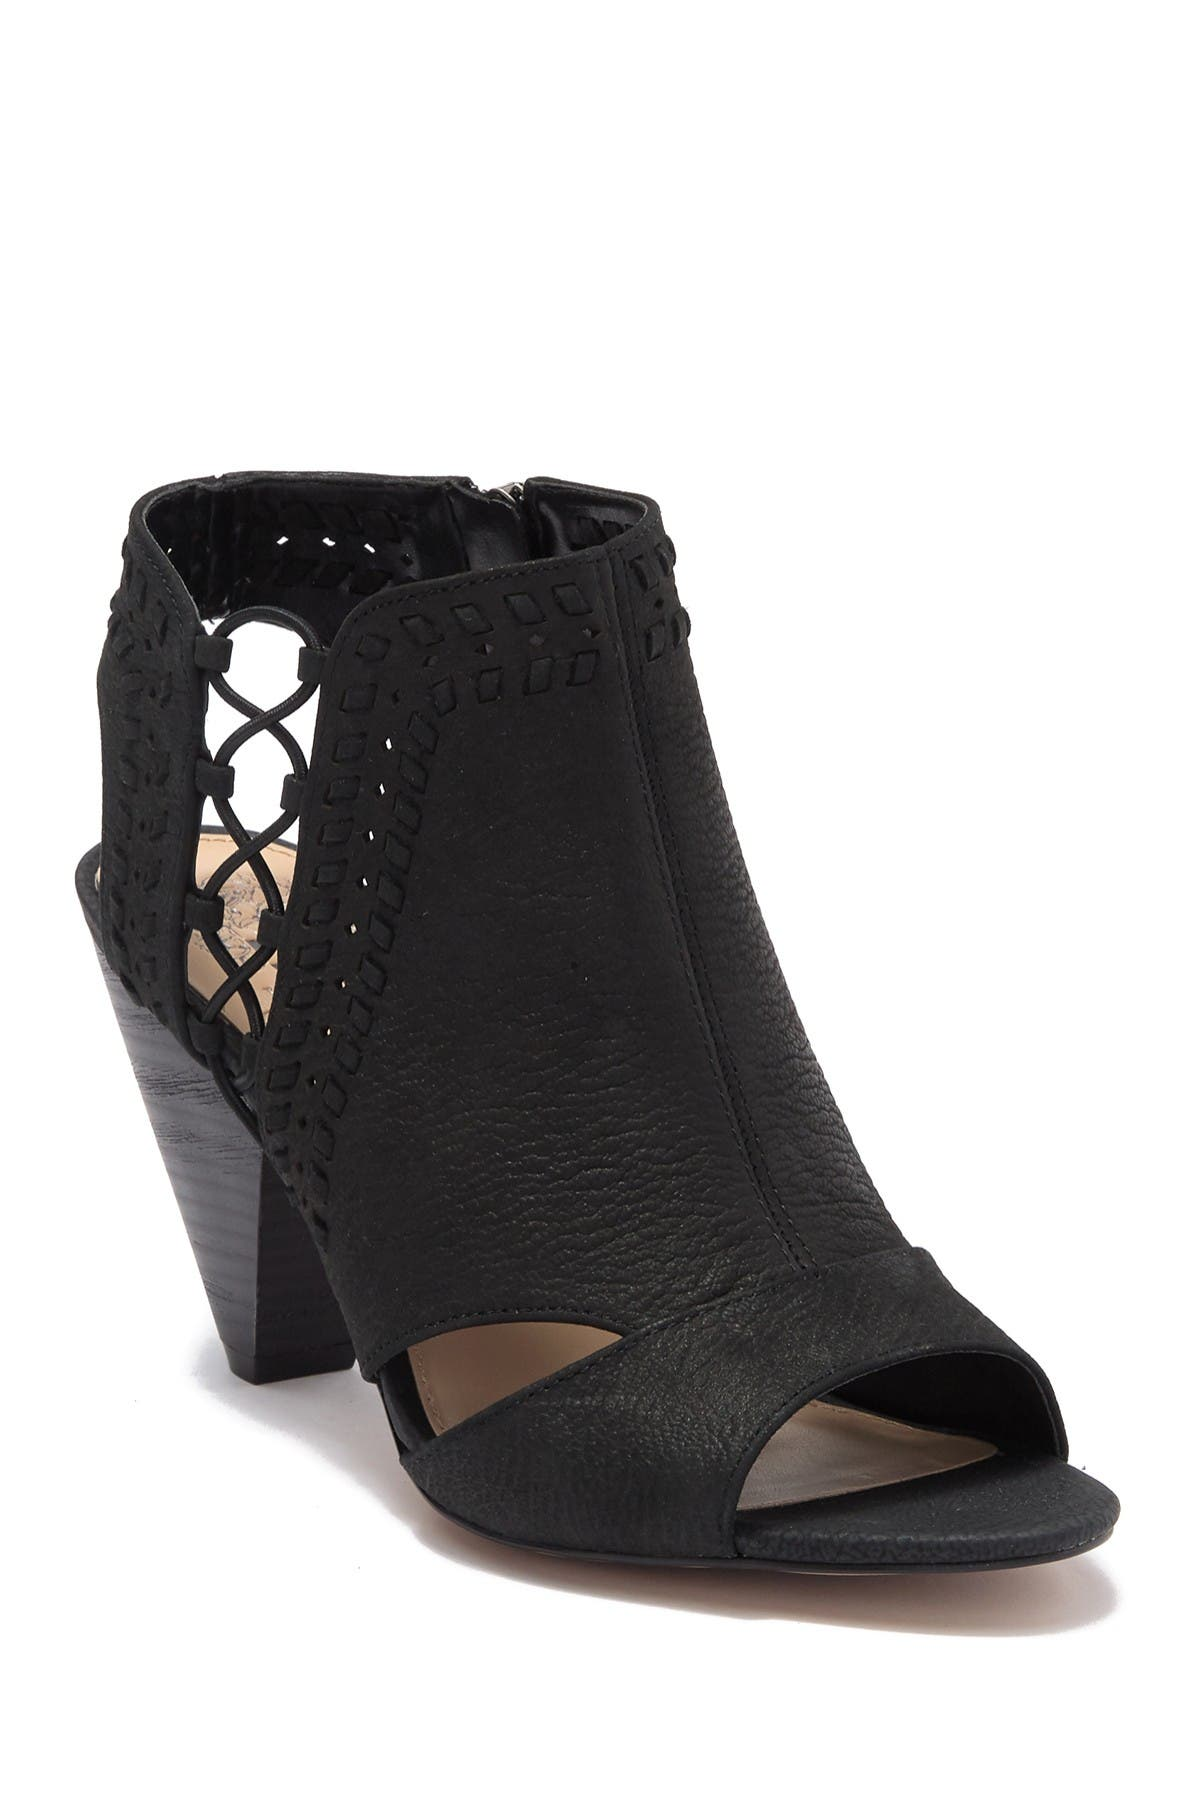 Image of Vince Camuto Emmia Woven Leather Block Heel Sandal